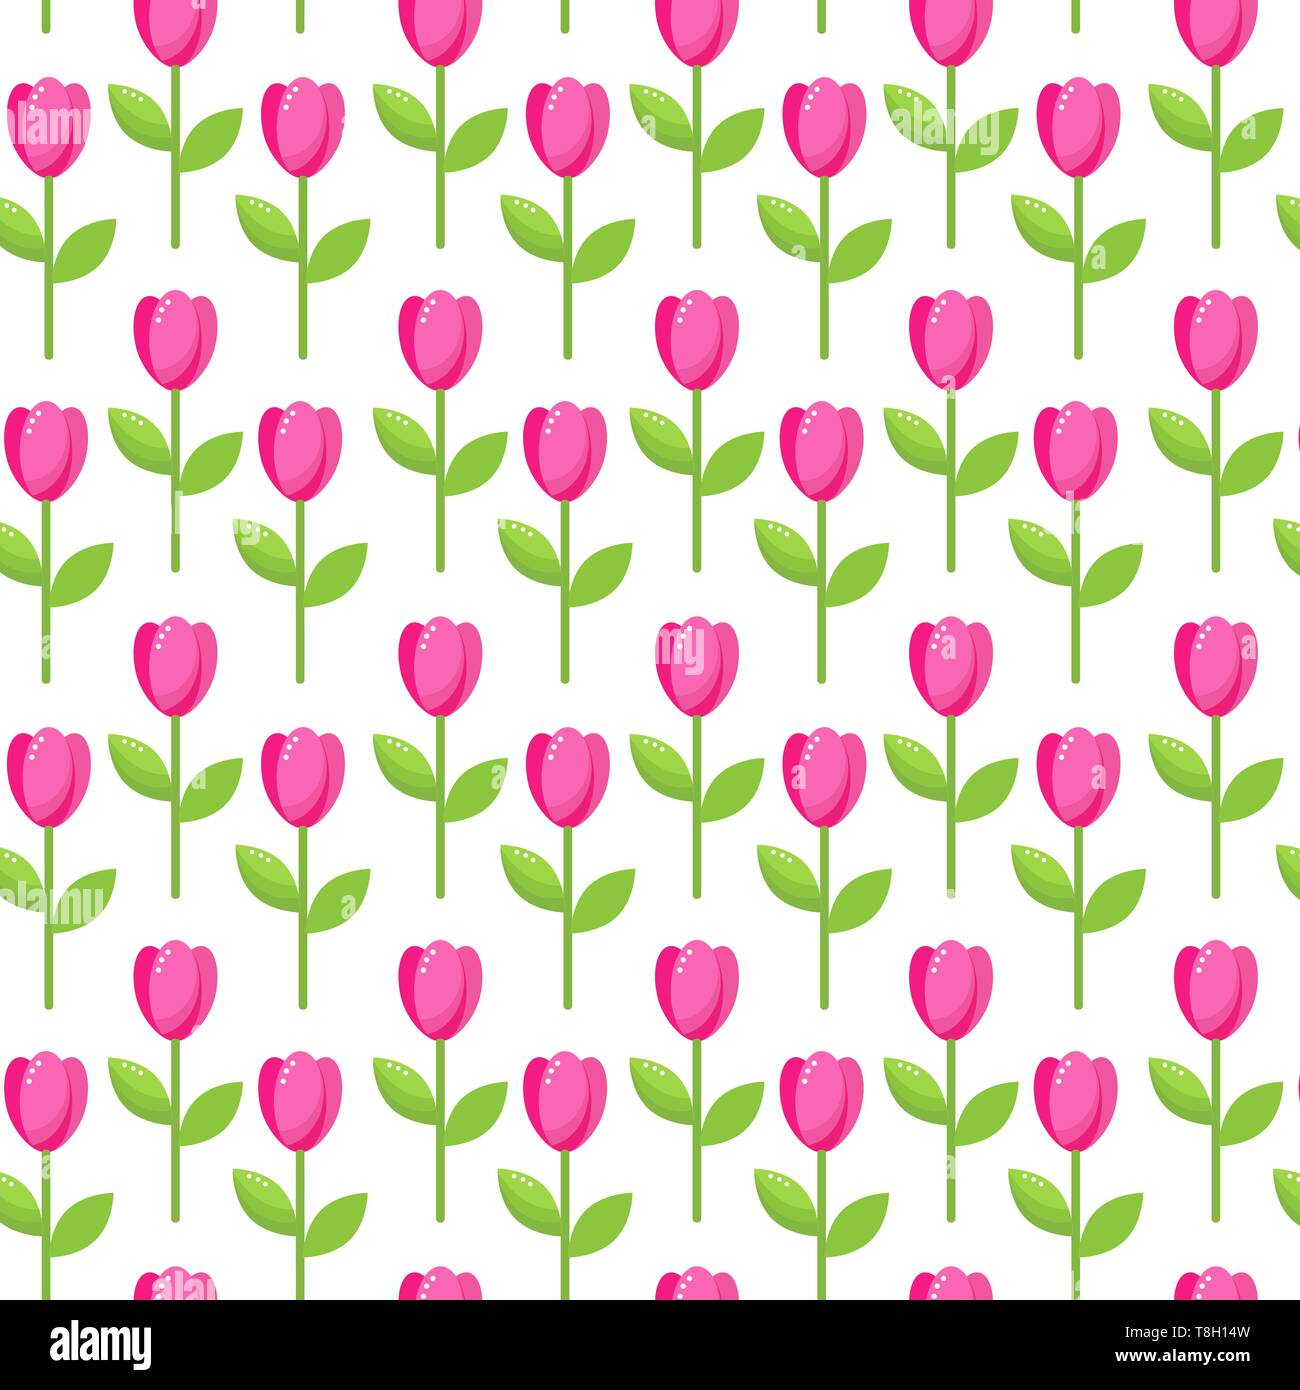 seamless vector pattern of pink stylized tulip flowers - Stock Vector